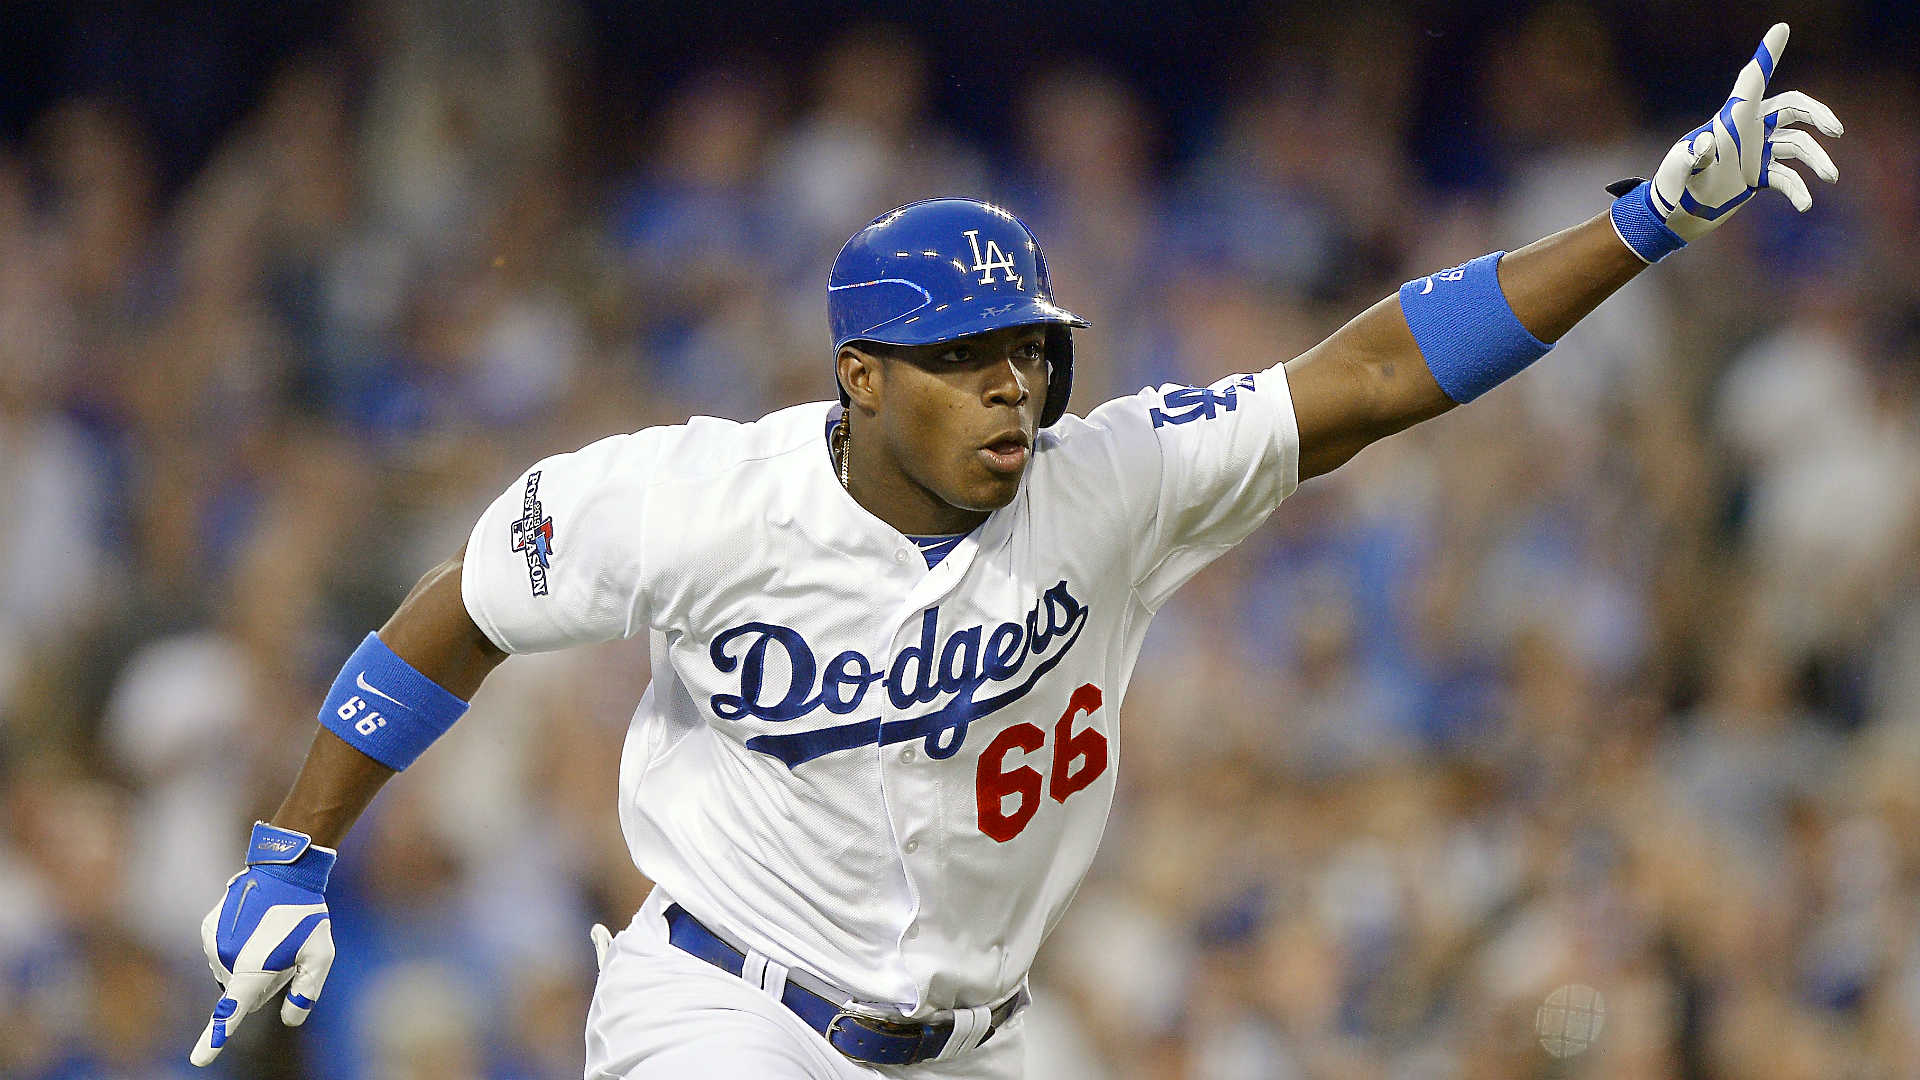 Yasiel Puig was an overnight fantasy baseball sensation, and more Cuban stars are on the way